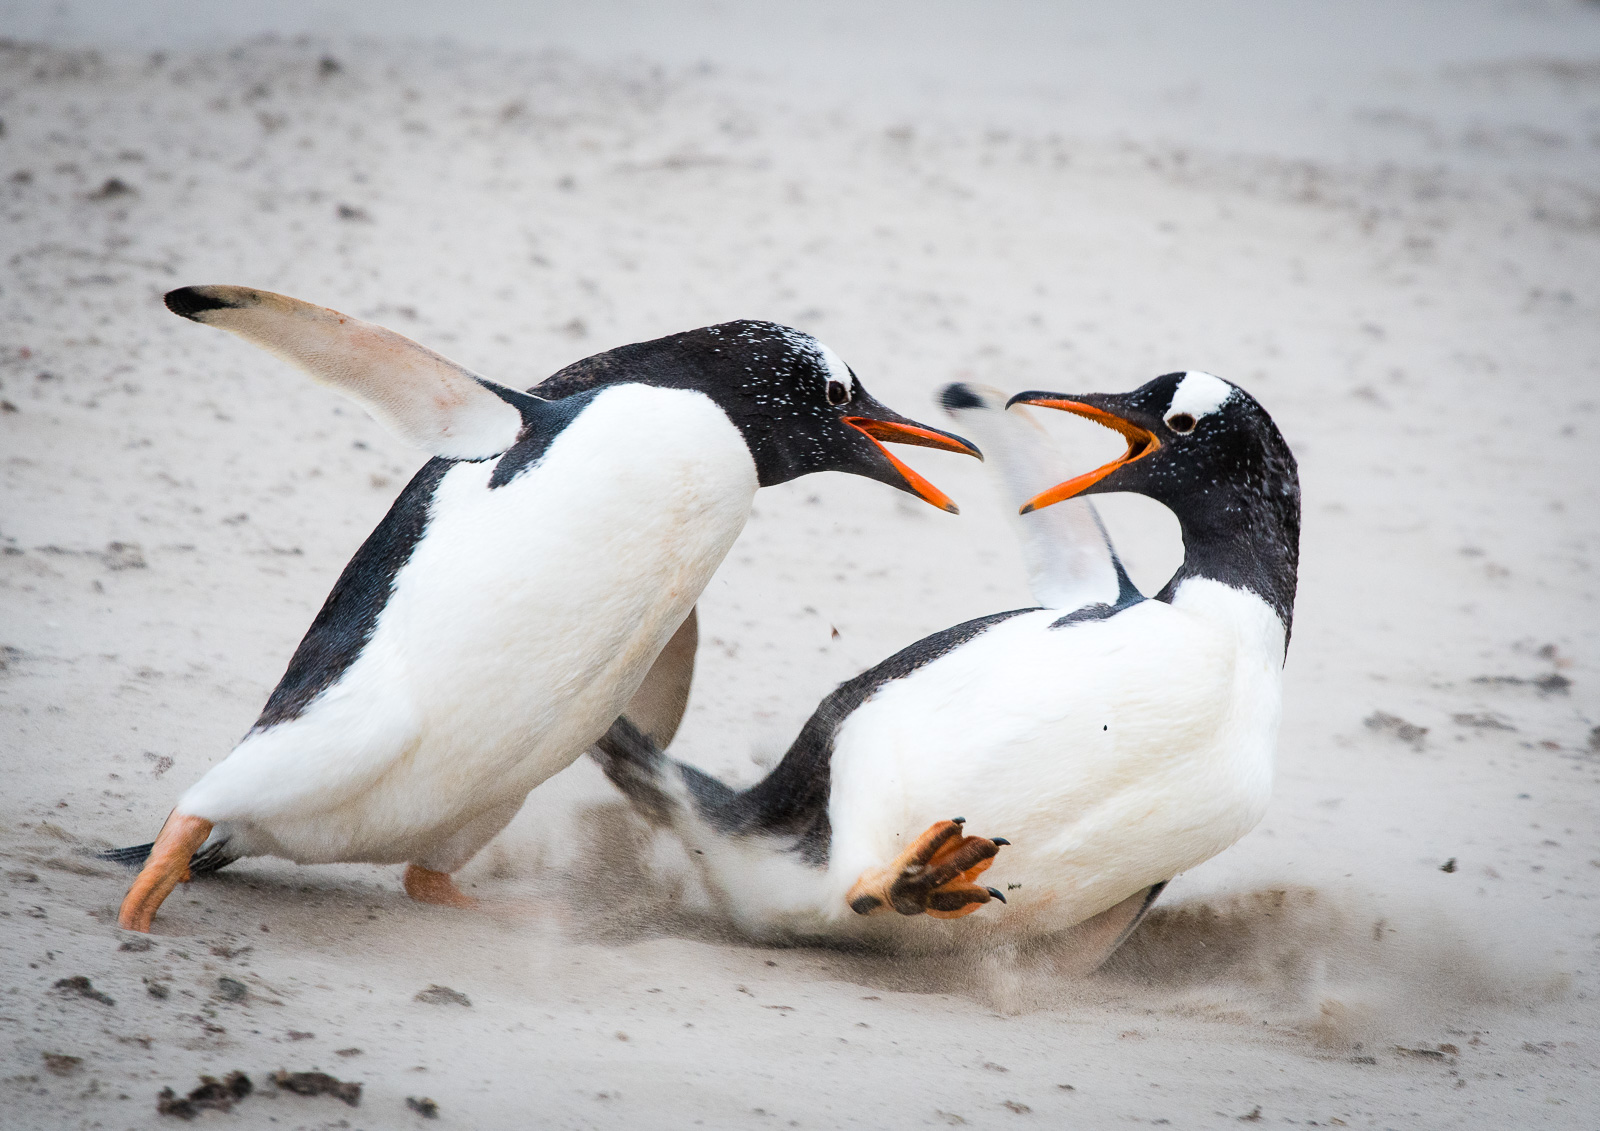 DUELLING PENGUINS: This was probably the most effective shot of the sequence, dramatic, free from distractions and sufficiently sharp to stand alone.  Nikon D500 300mm f4; 1/320sec f6.3 ISO 1000   Duelling Penguins  was shortlisted for  NHM Wildlife Photographer of the Year 2017  award.